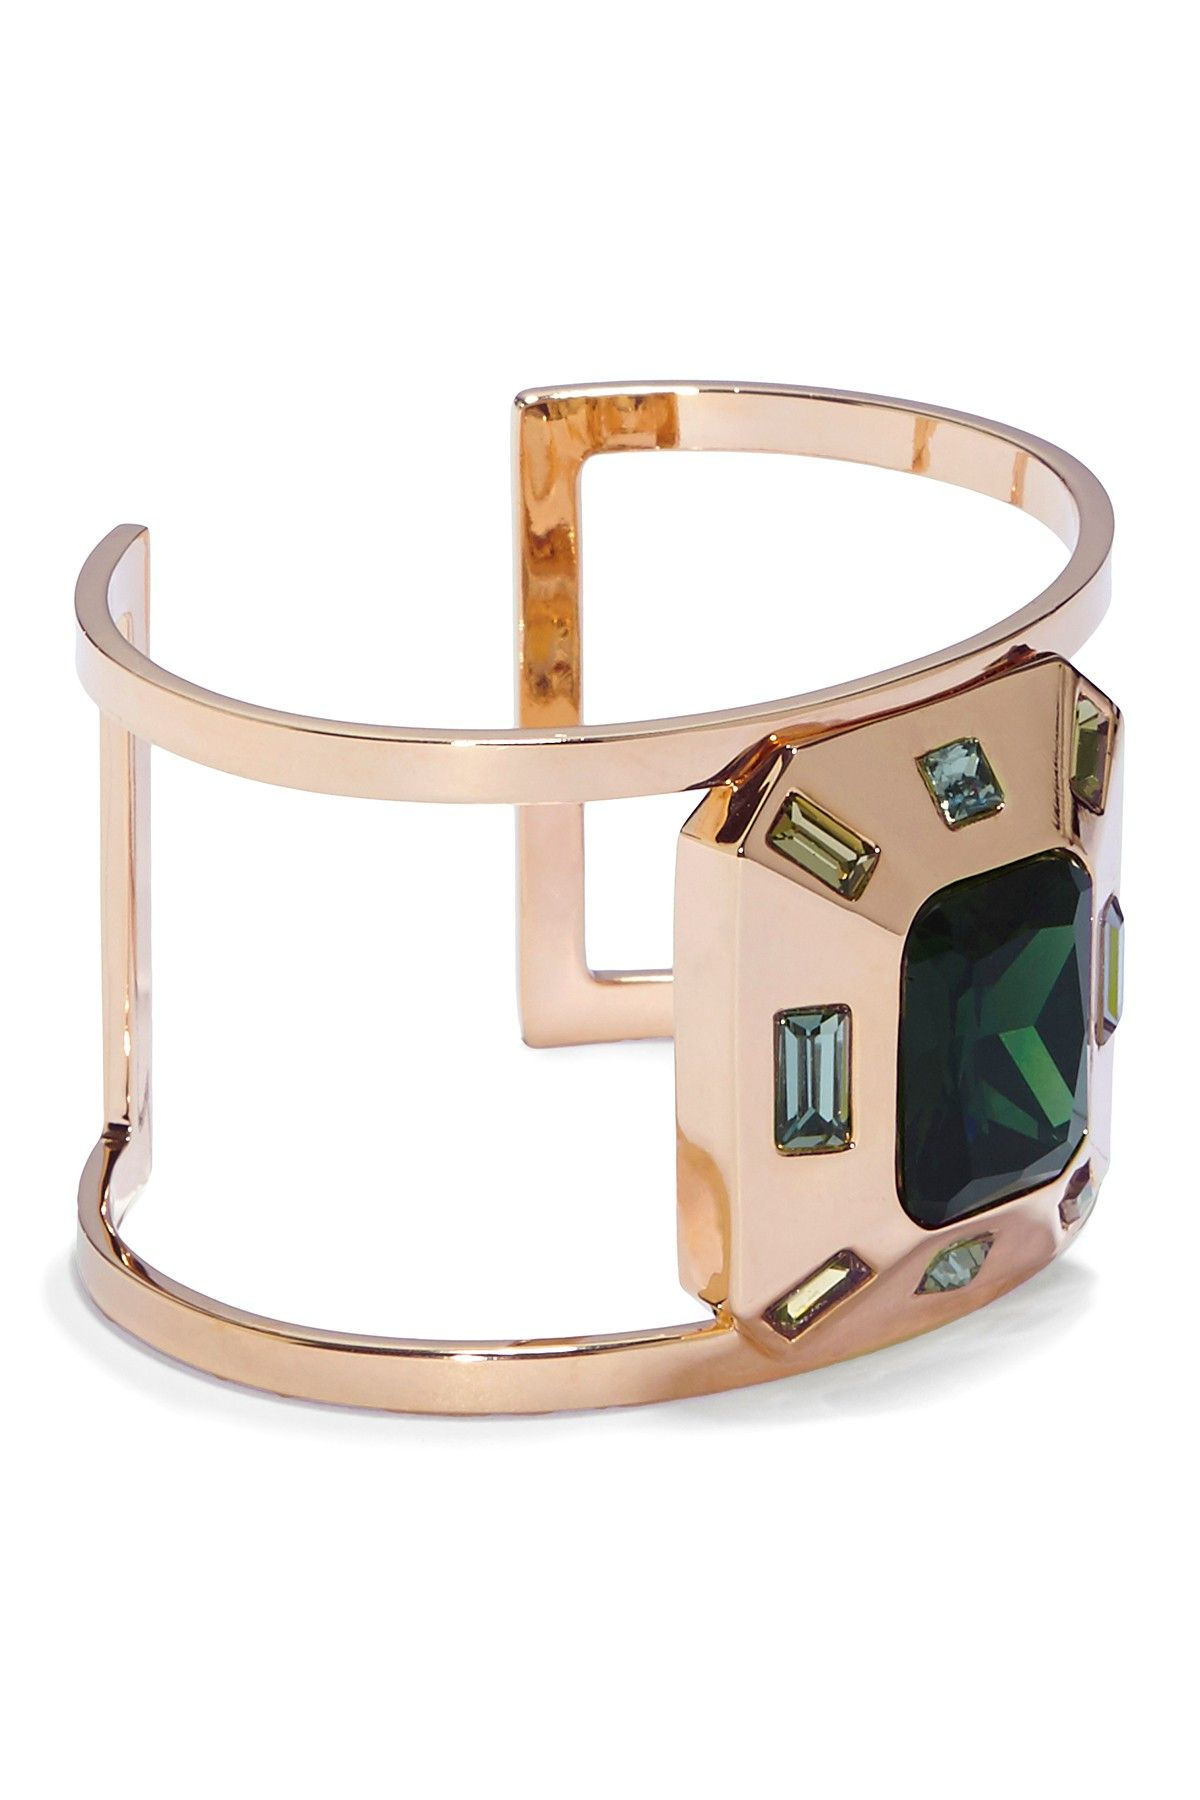 62c843868d3 Vince Camuto | Faceted Crystal Statement T-Bar Cuff | Products ...